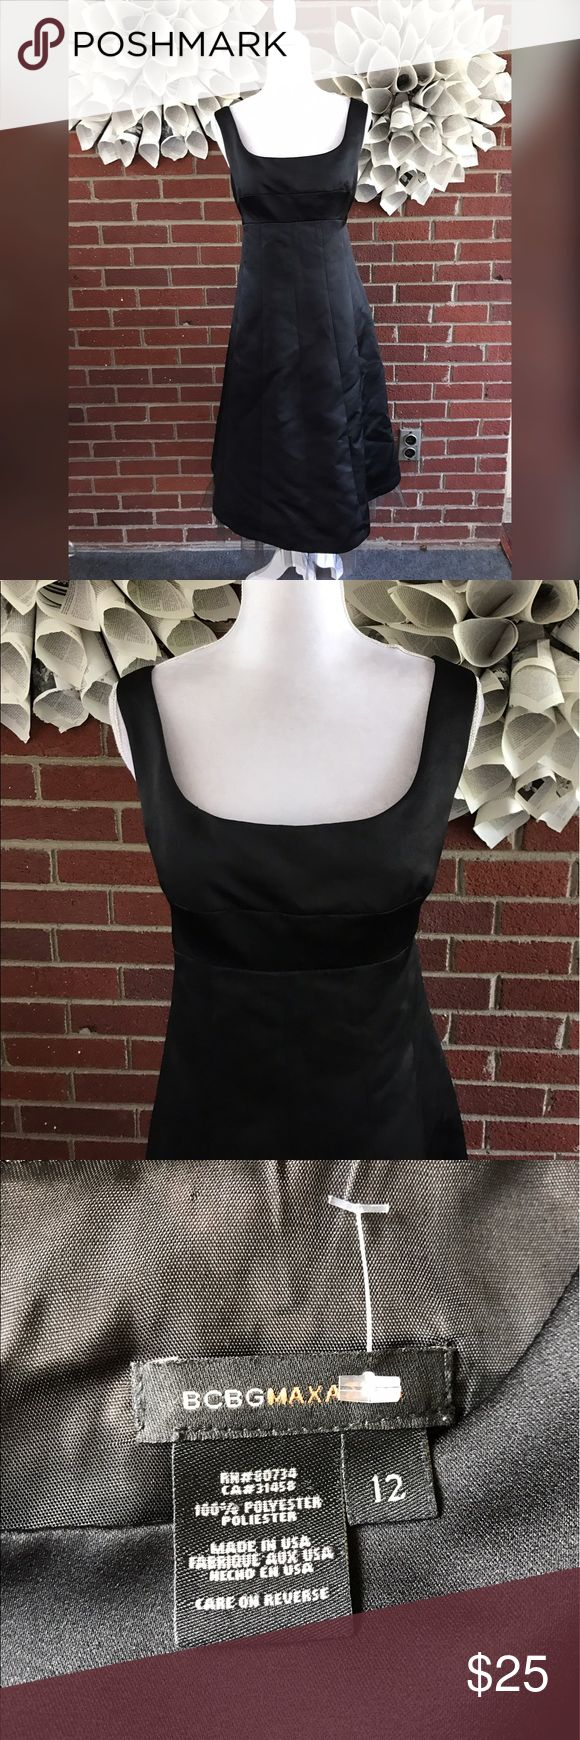 BCBG MAxAZria Sleeveless Satin tuelle lined dress Please see photos for all measure in detail. This item comes from a smoke free home. There are no holes rips tears or stains to note. Shipping is fast! Buy with confidence! Thanks for looking and happy shopping! BCBGMaxAzria Dresses Midi